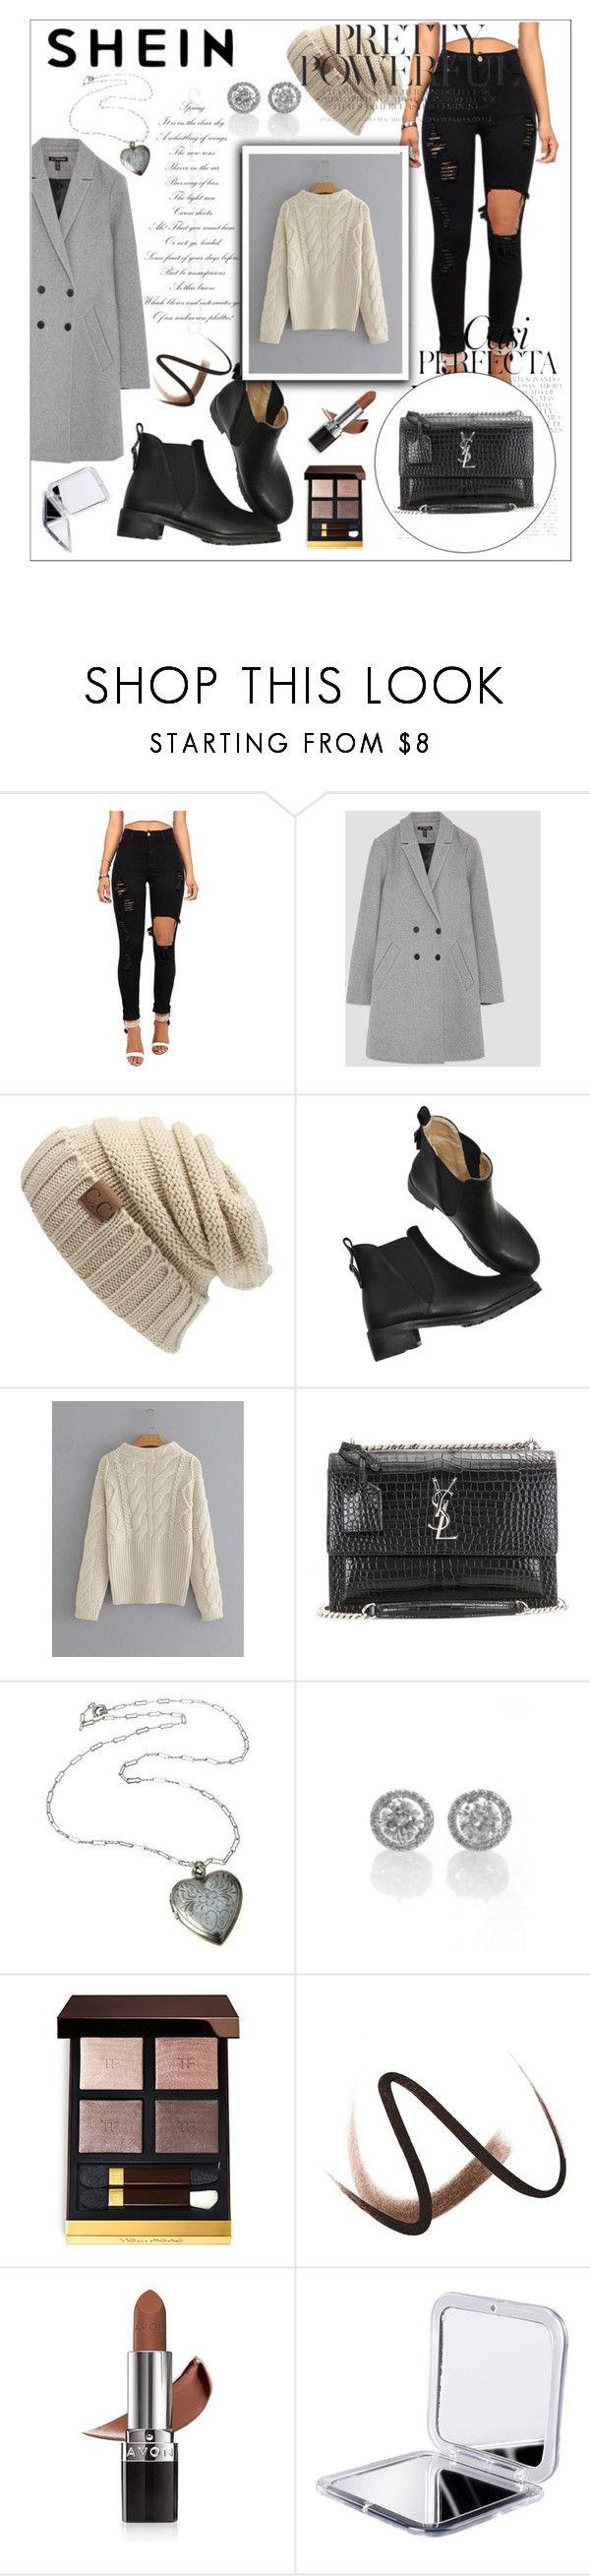 """Cable-Knit-Jumper-Sweater"" by sabina-mehic656 ❤ liked on Polyvore featuring Whiteley, Yves Saint Laurent, Burberry and Avon"